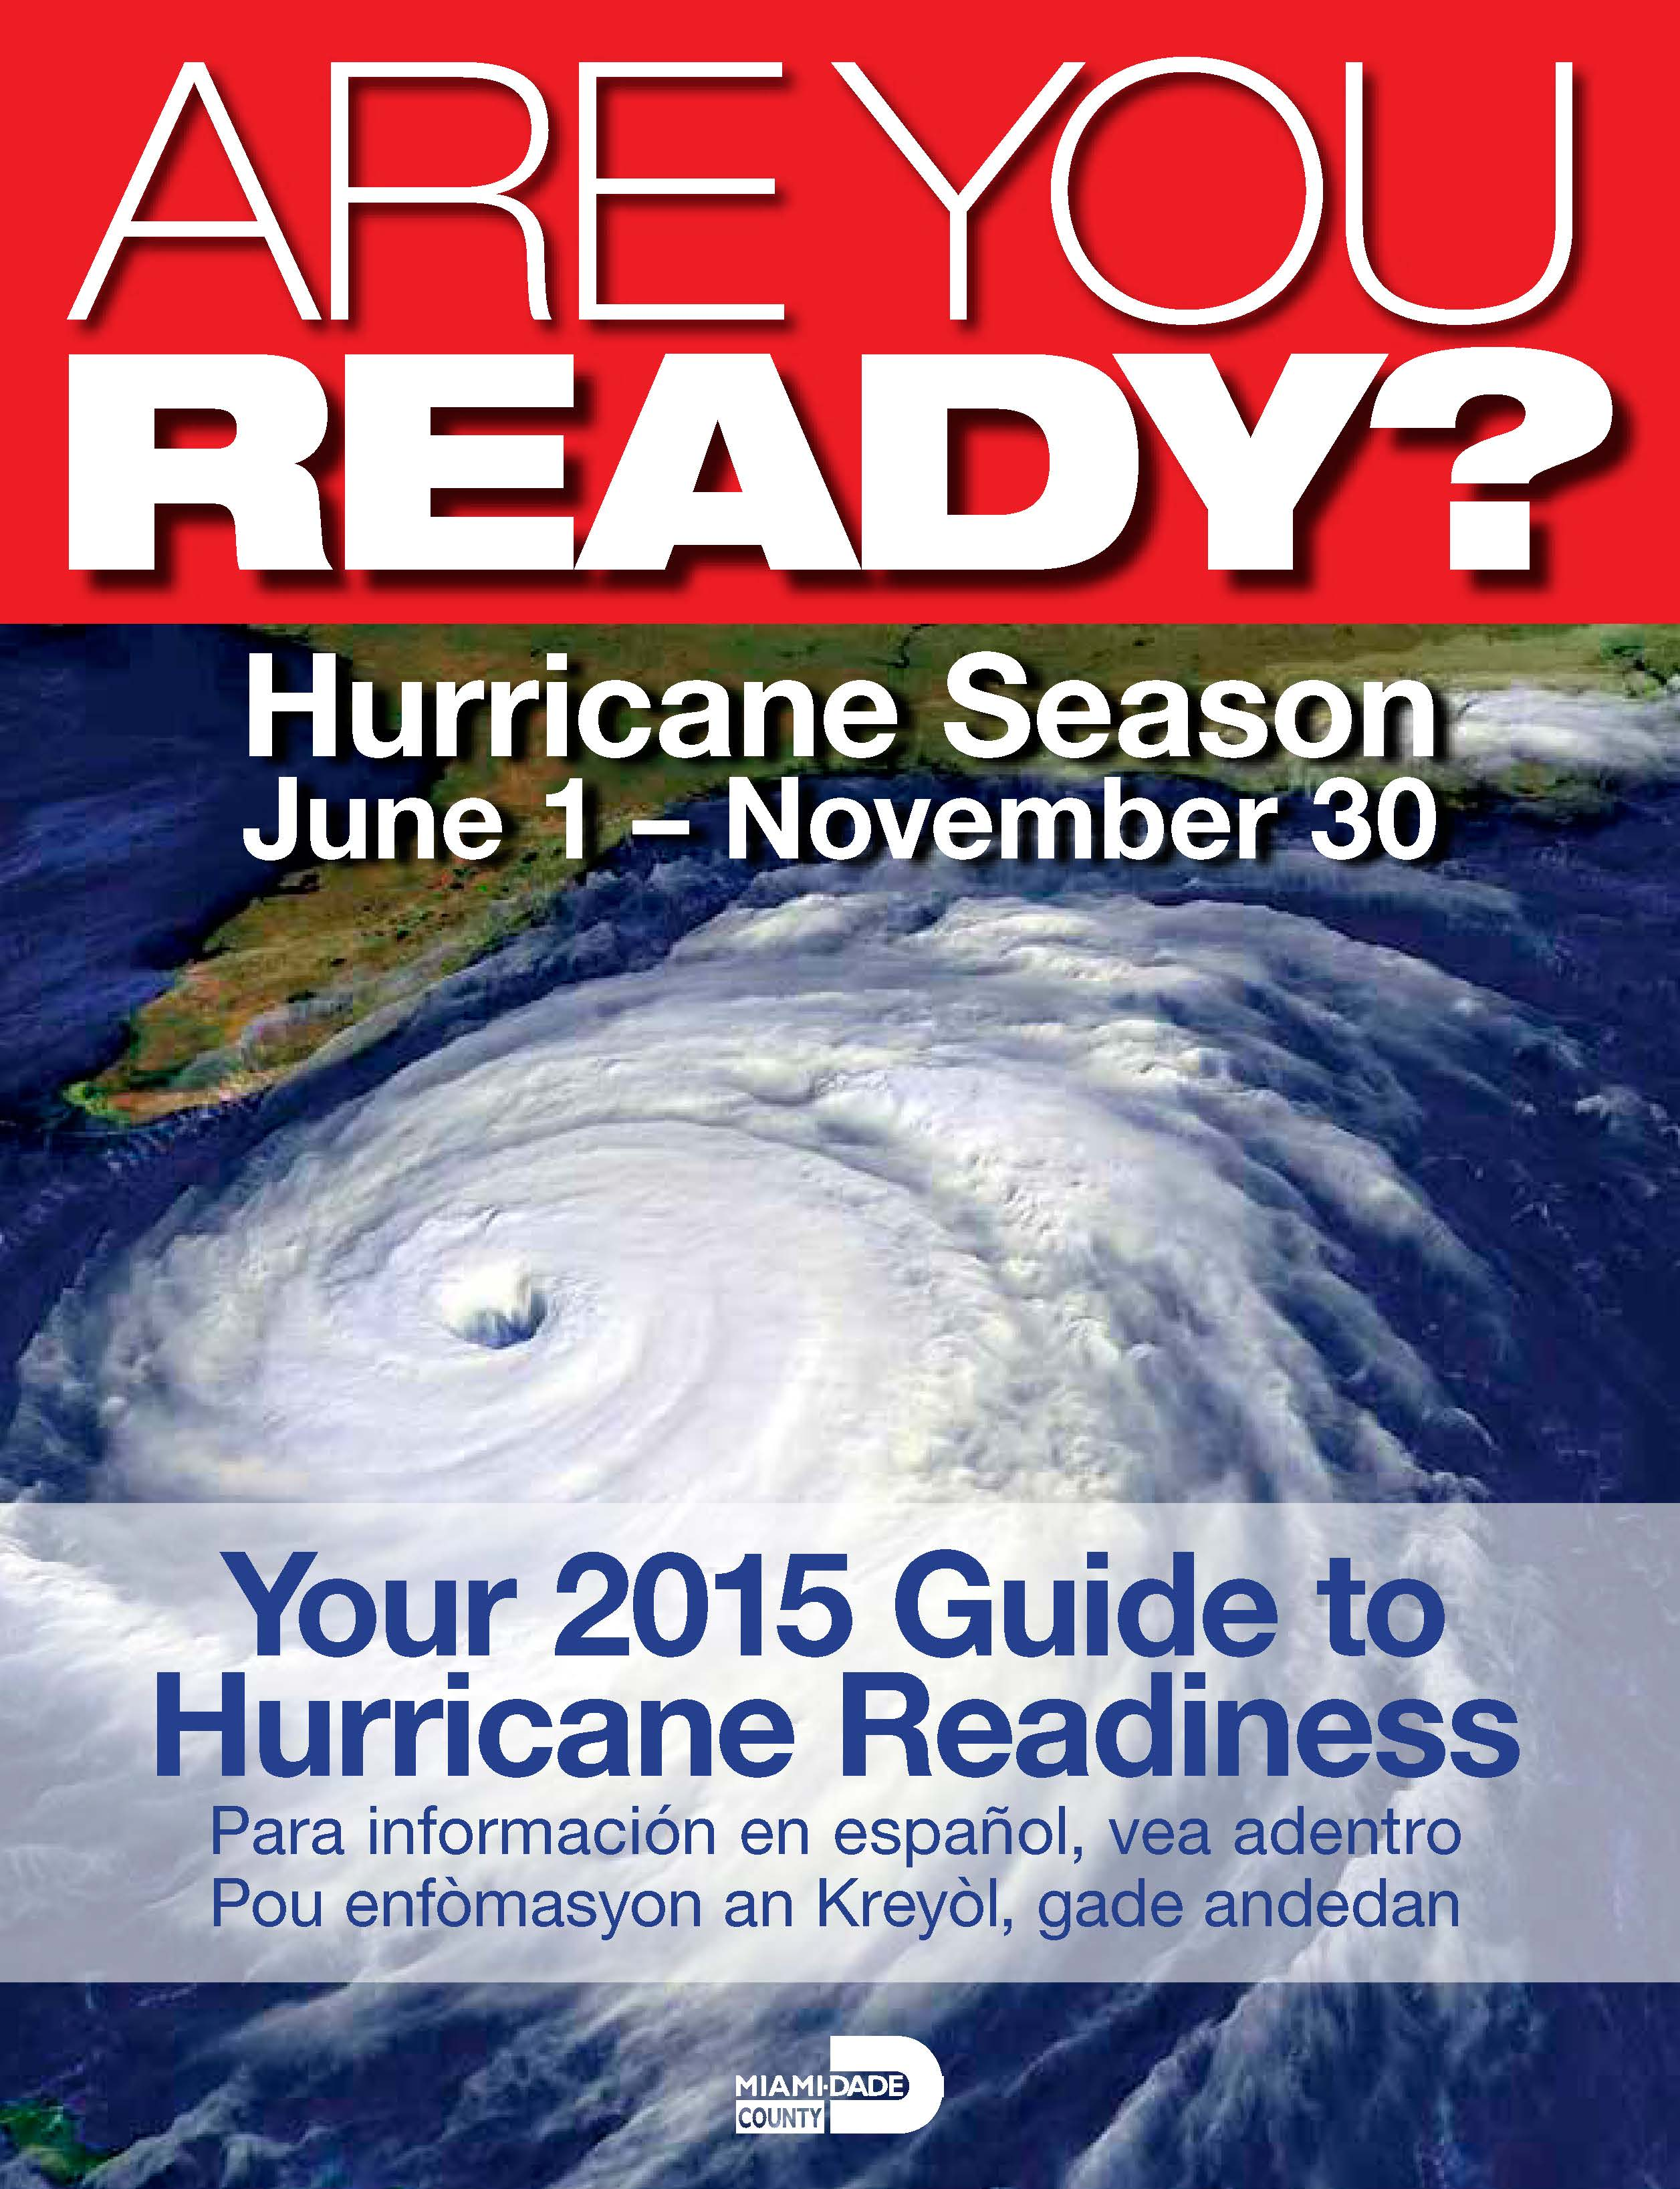 Miami Dade County Hurricane Guide